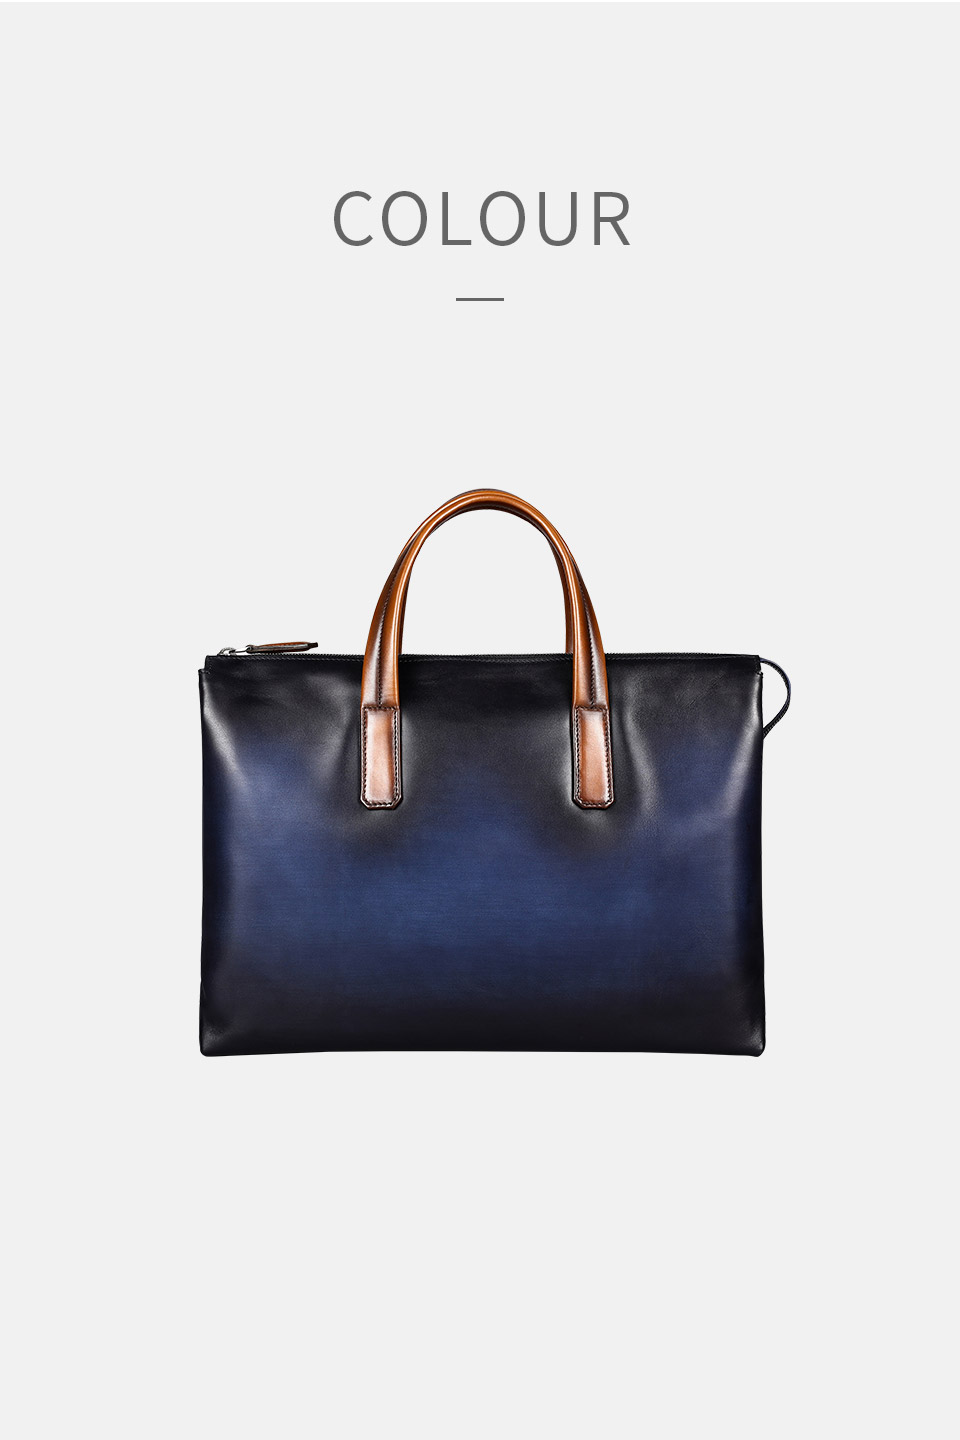 eaeee00803 DIMY Handmade Italian Genuine Leather Briefcase Men Business Case OL Style  Hand Patina Messenger Shoulder Bags Laptop Men s Bags